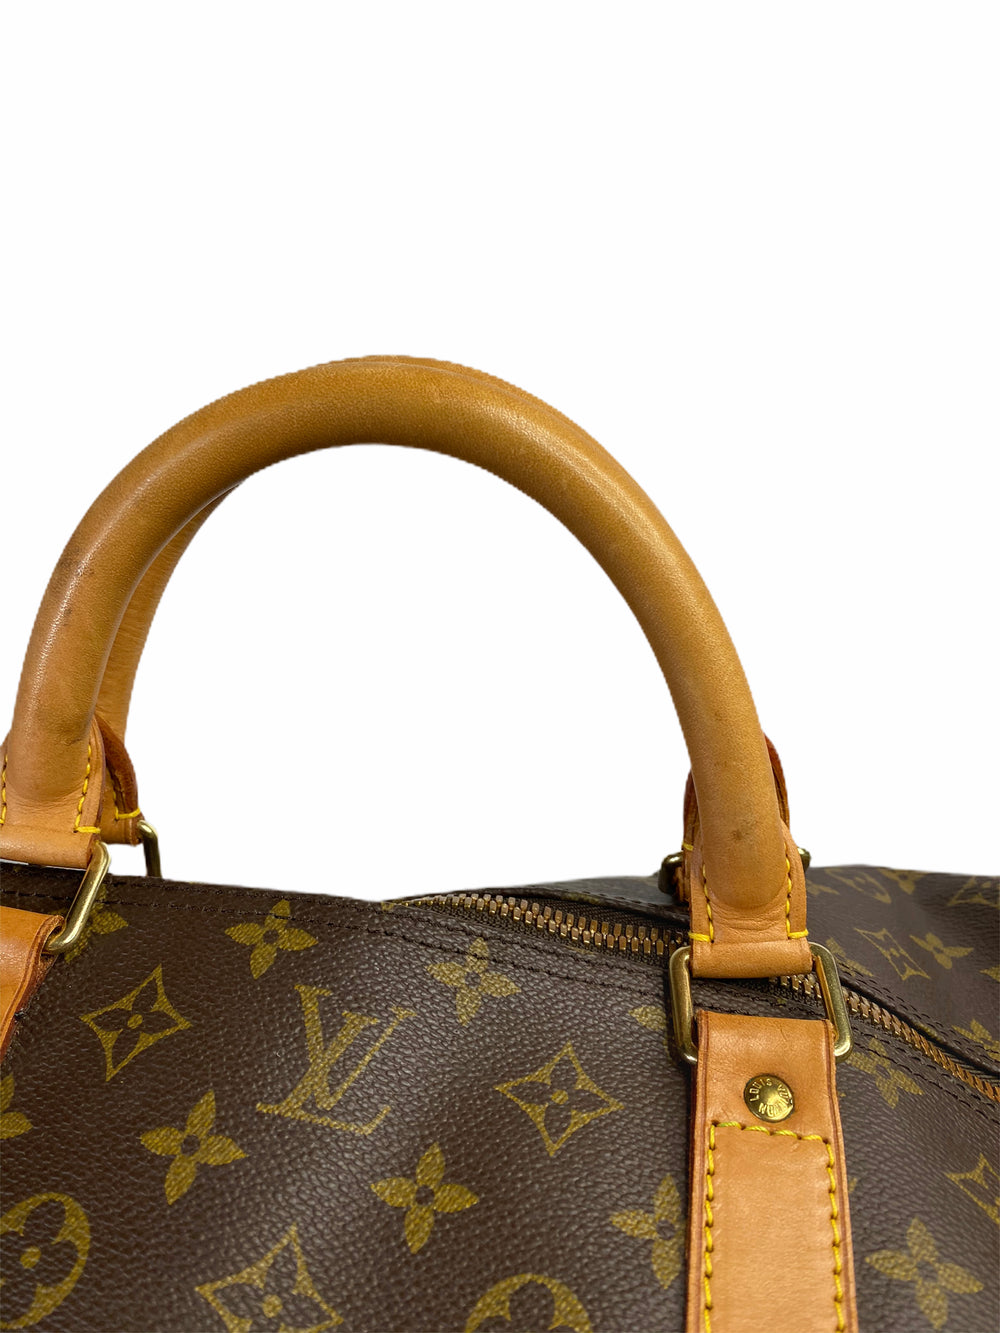 Louis Vuitton Monogram Keepall 60 - As Seen on Instagram 09/08/2020